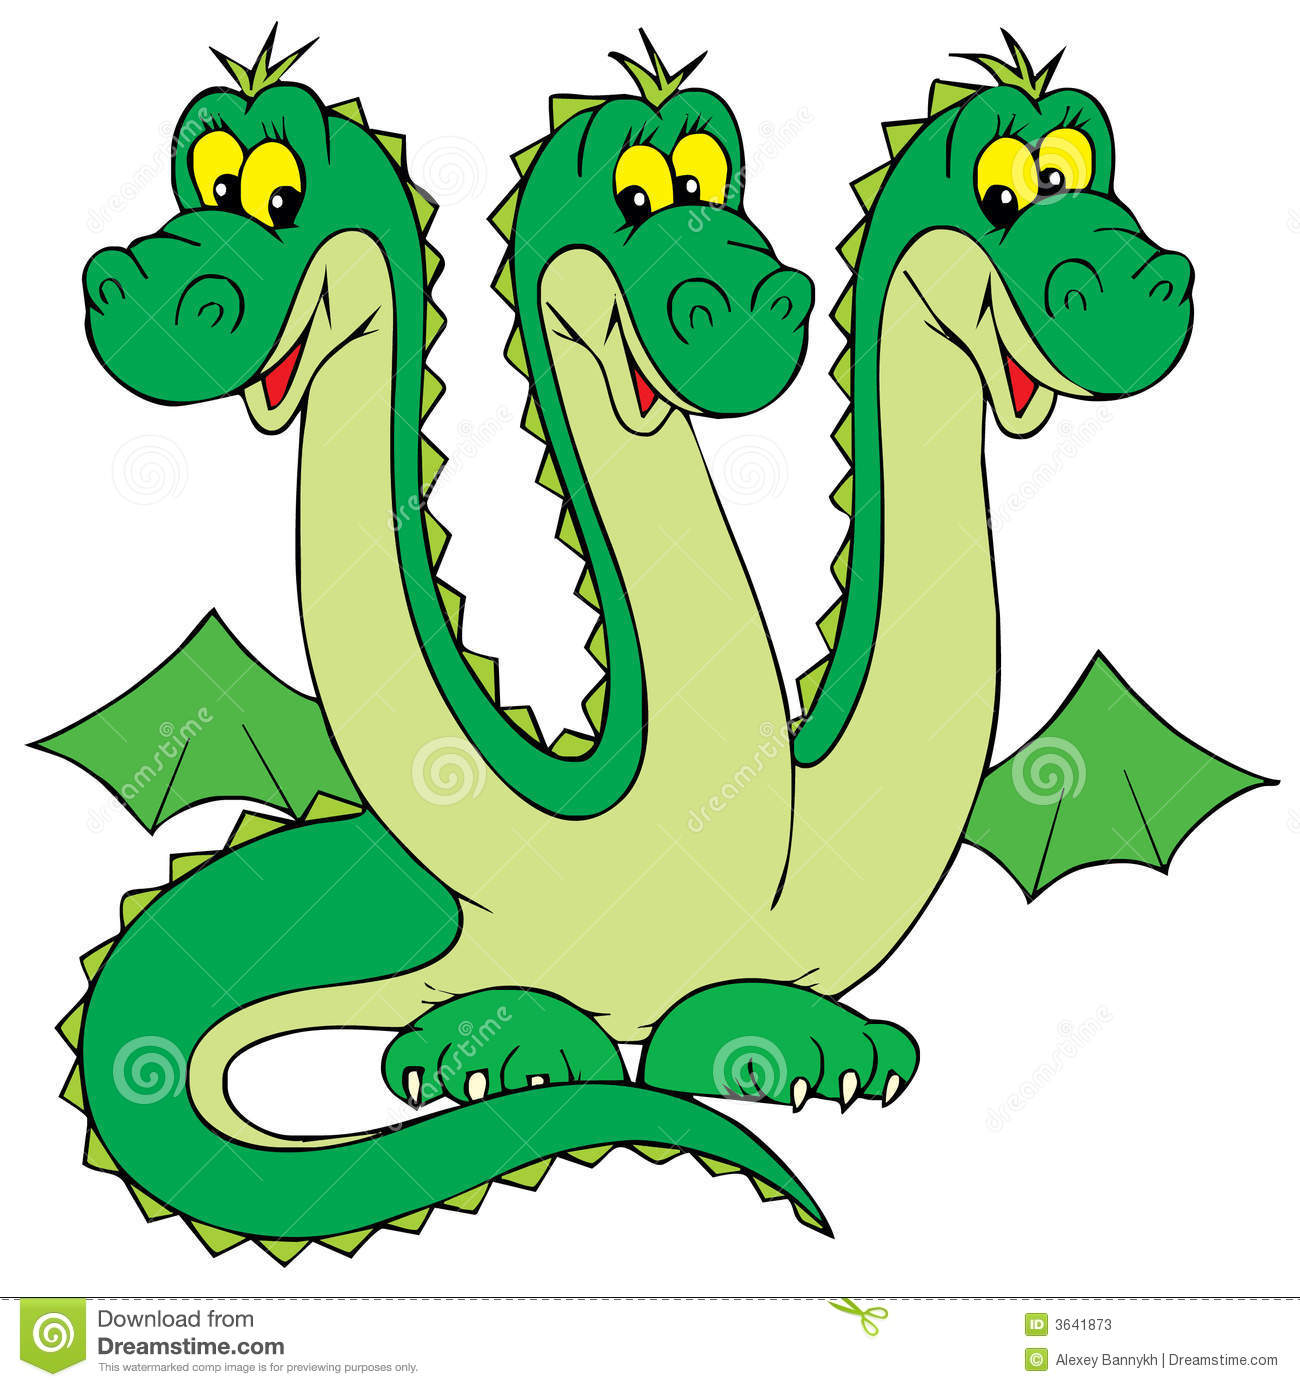 Dragon clipart #5, Download drawings